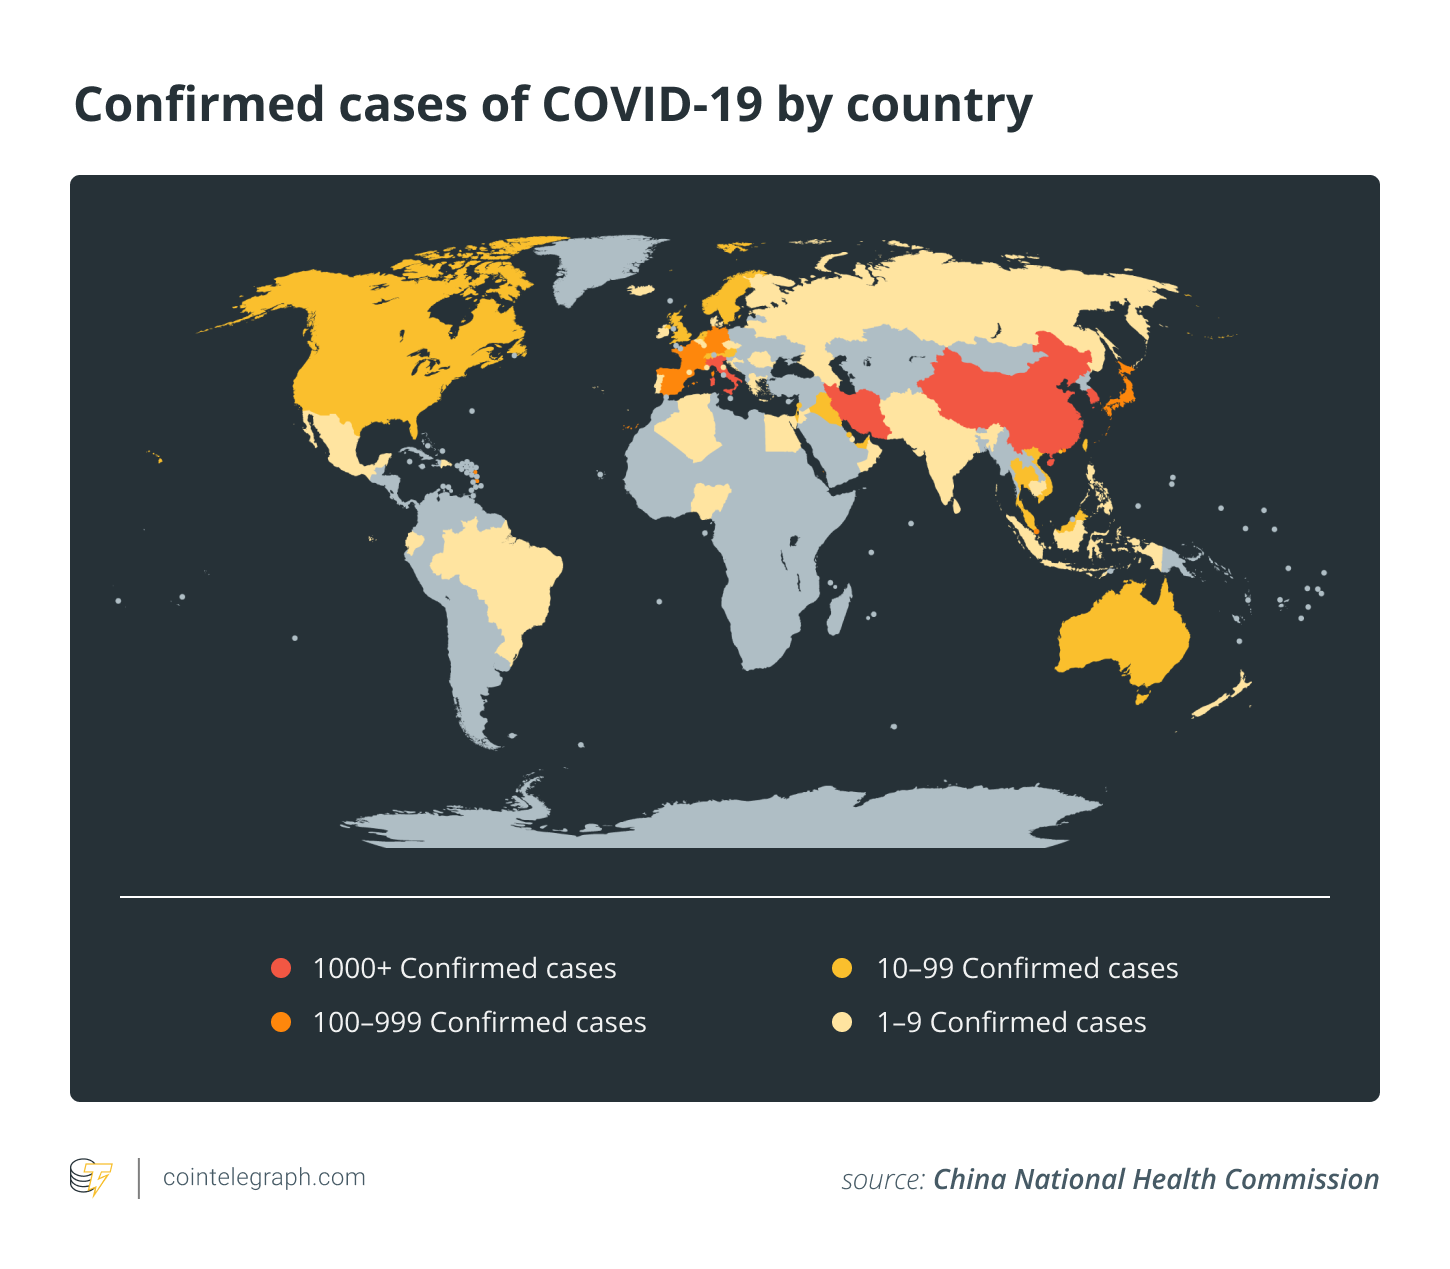 Confirmed cases of COVID-19 by country